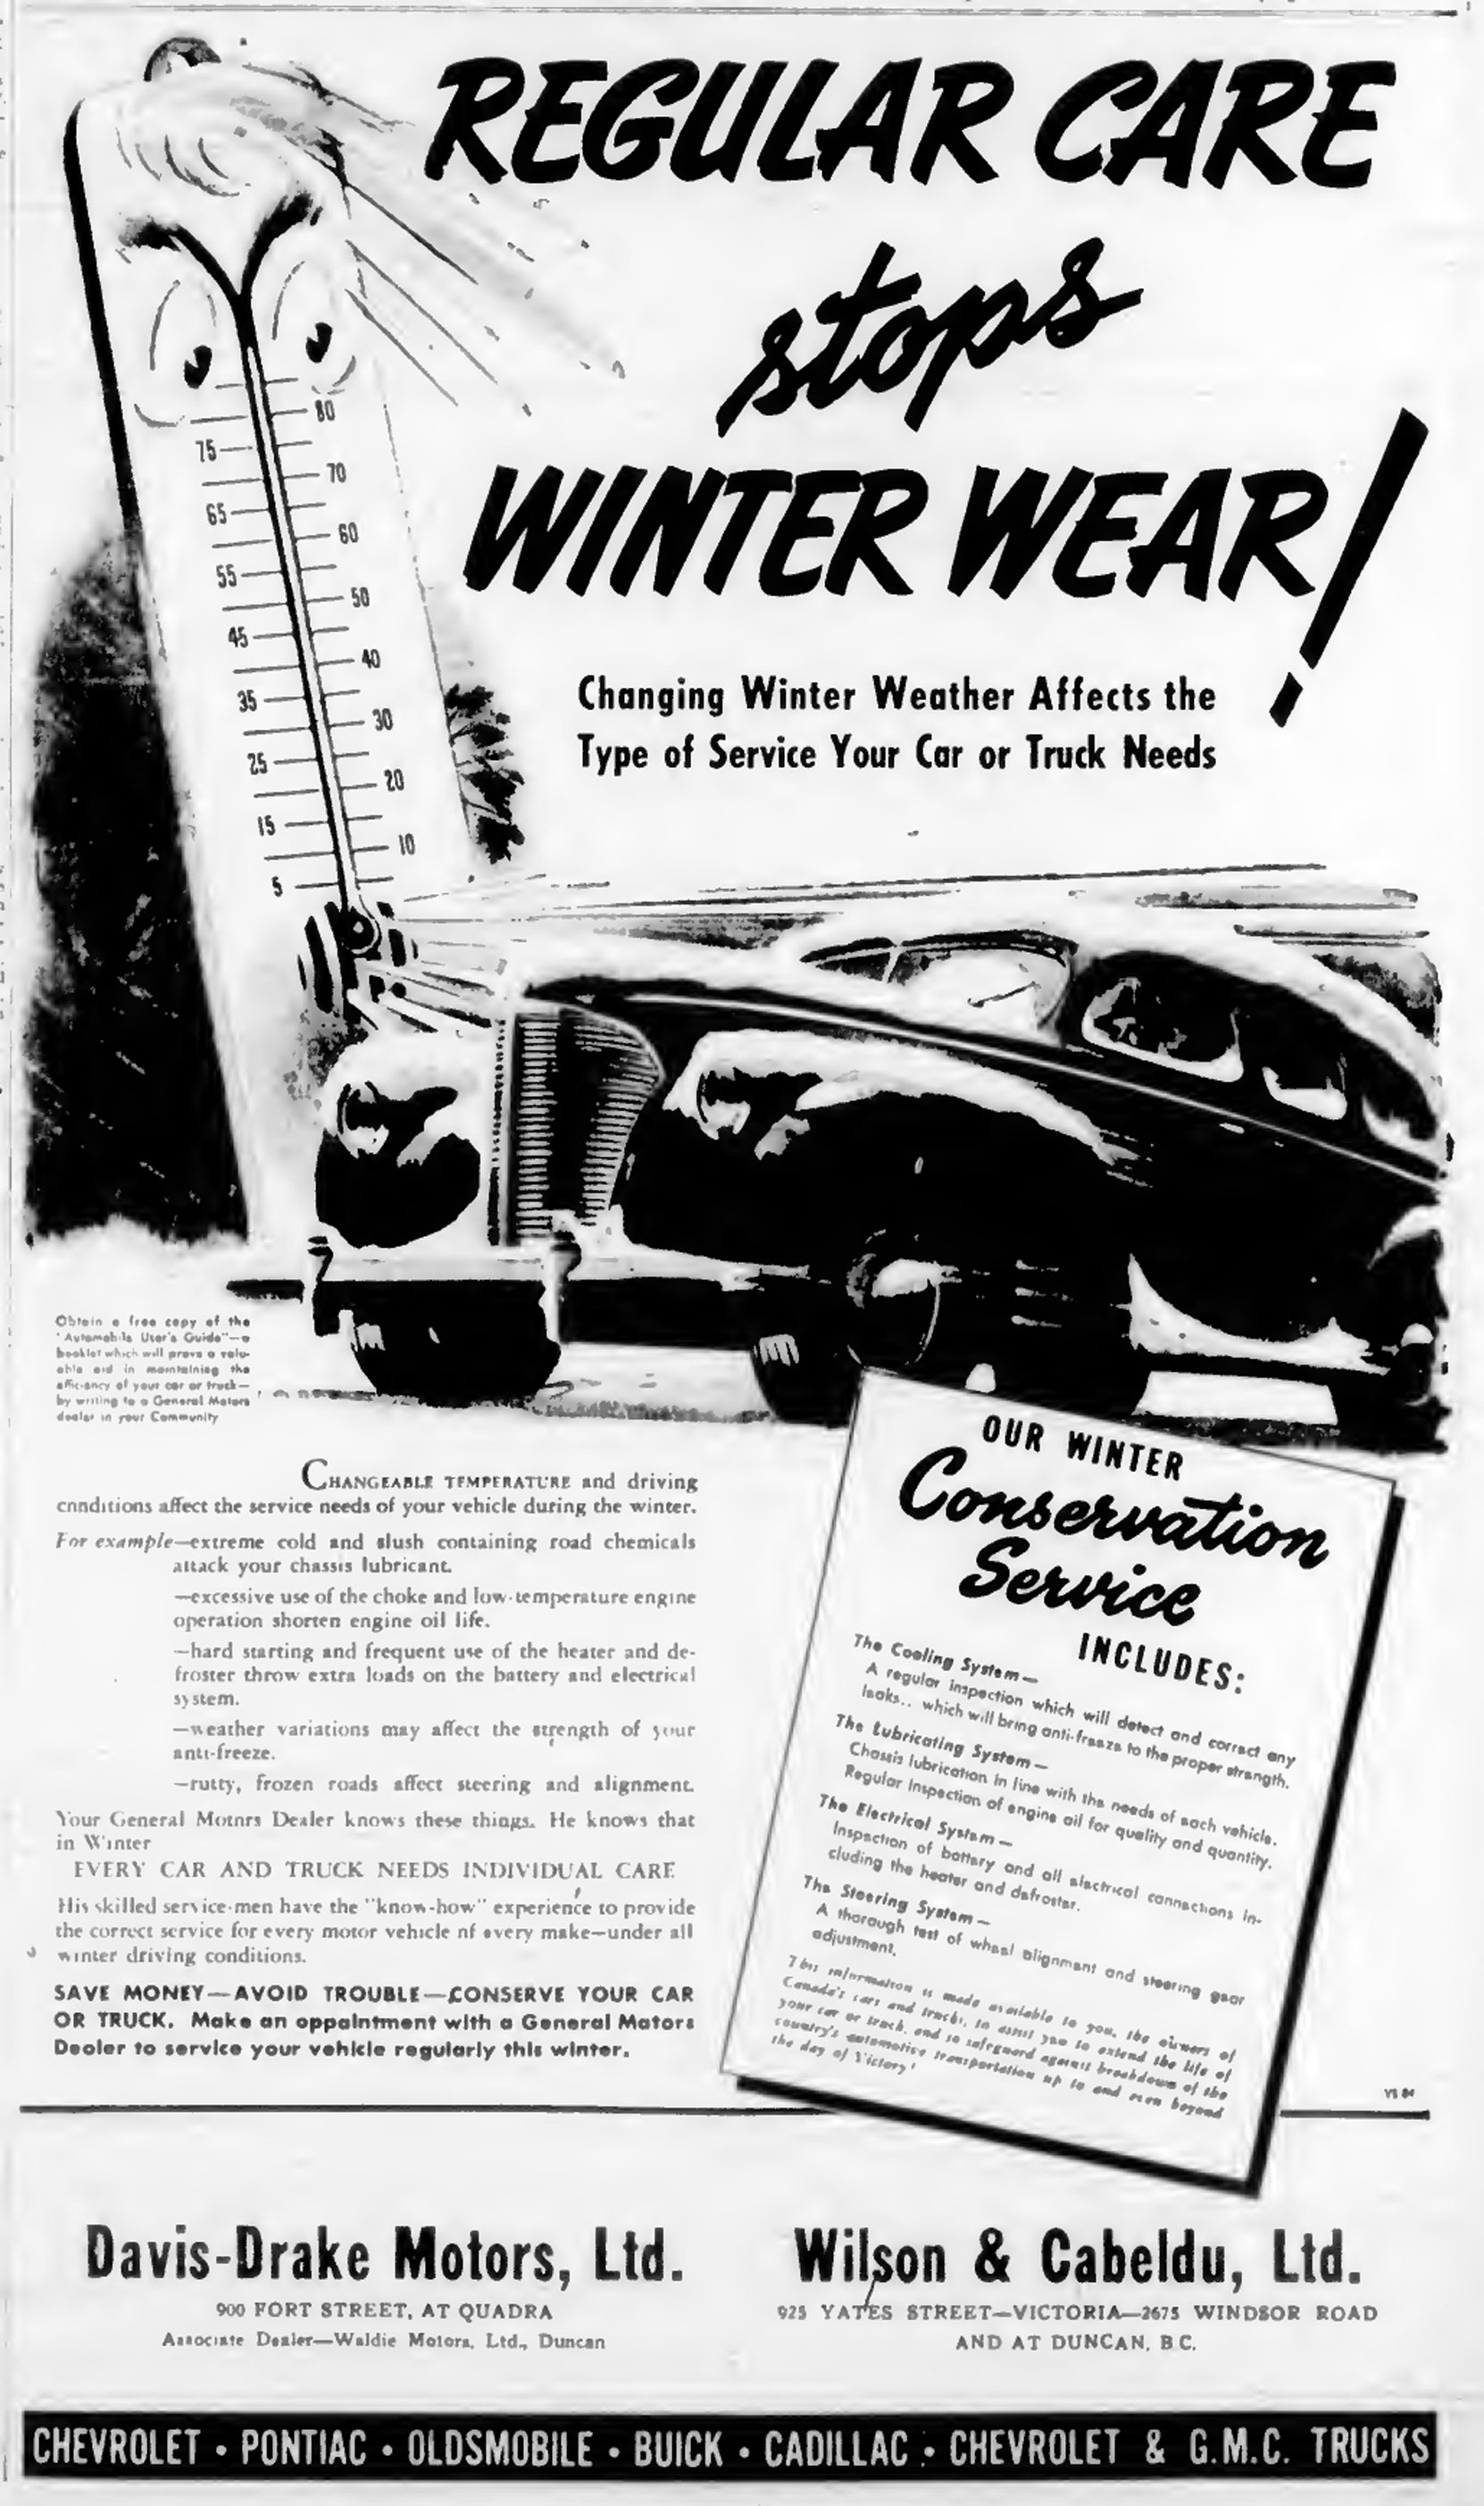 1944 advertisement about winter maintenance from Davis-Drake Motors and Wilson & Cabeldu, which were General Motors dealers in Victoria and Duncan. (West Coast Driver Training collection)